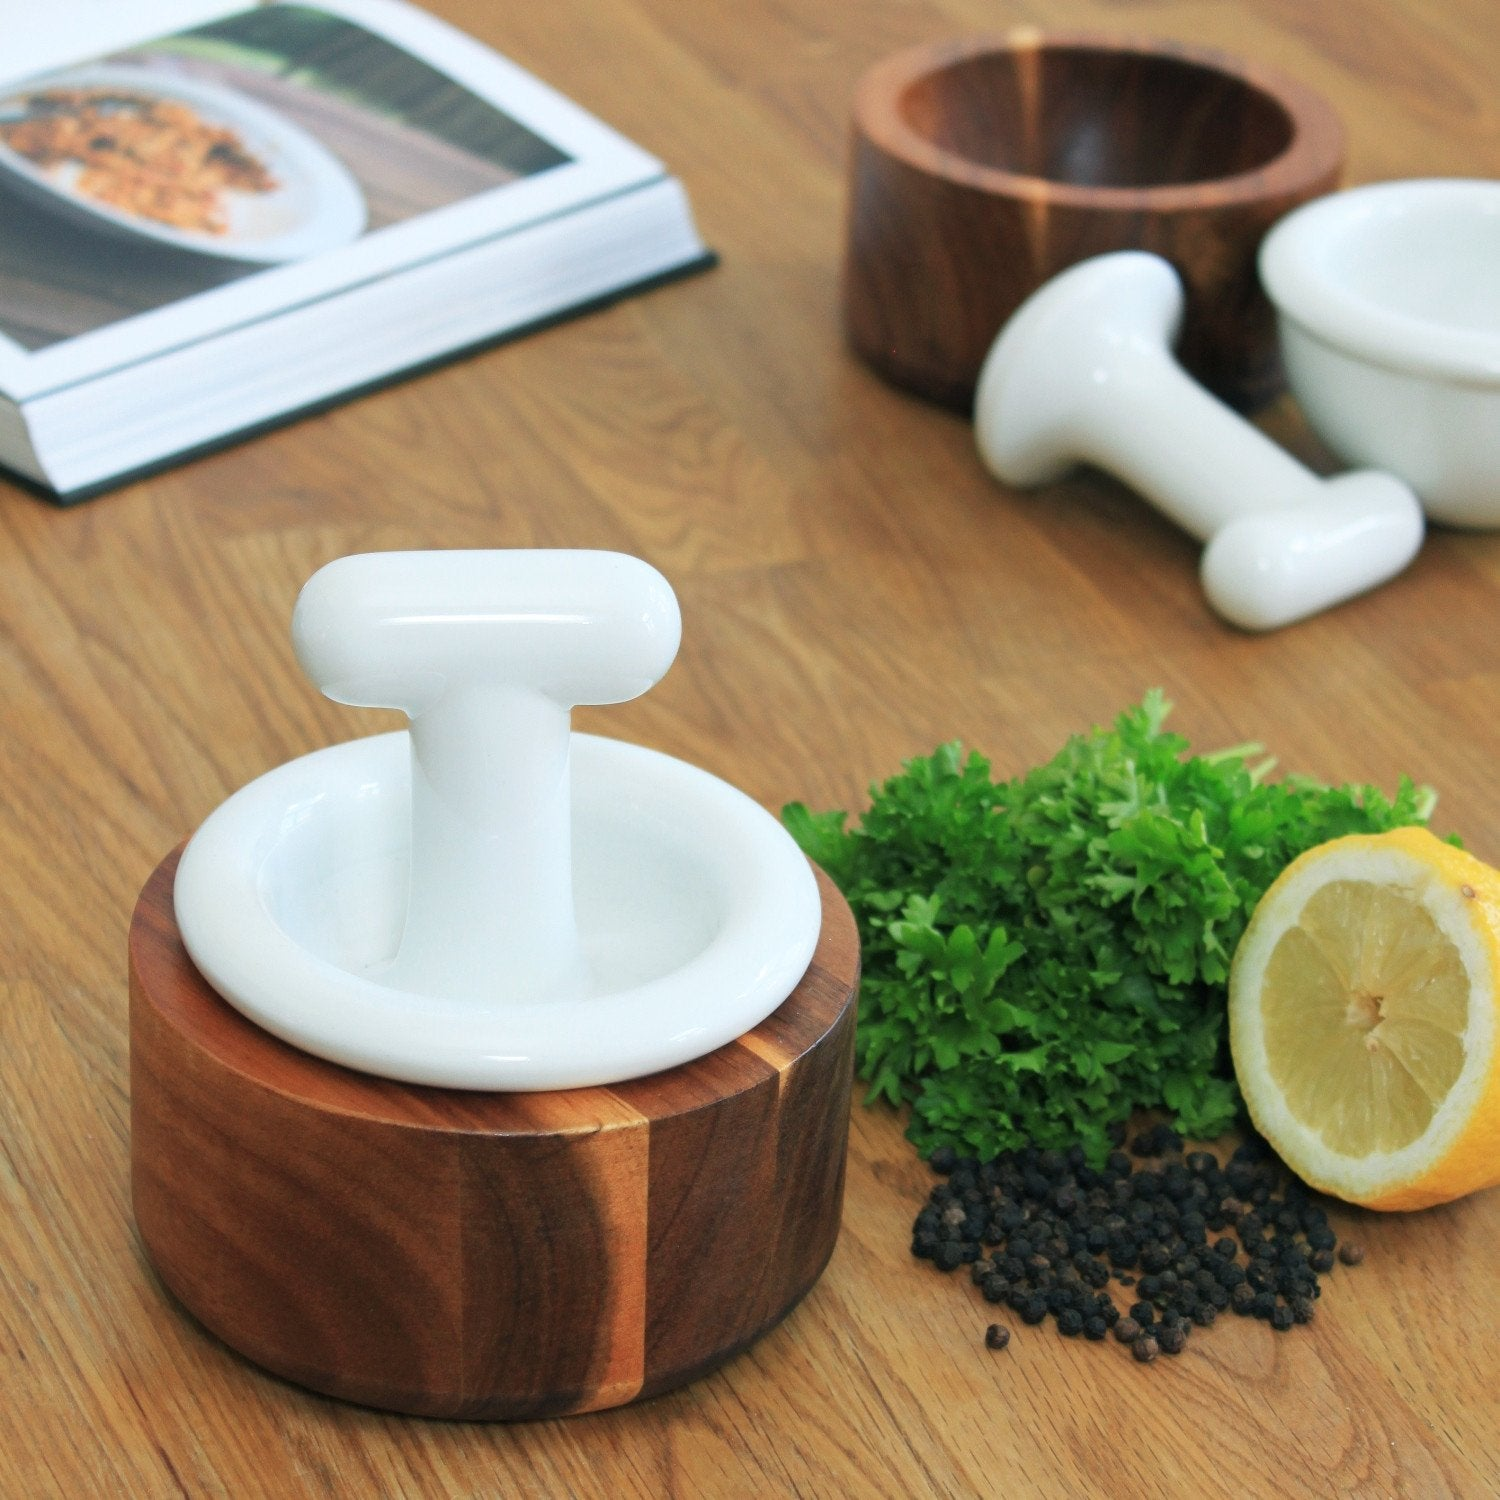 Tonfisk Mortar and Pestle